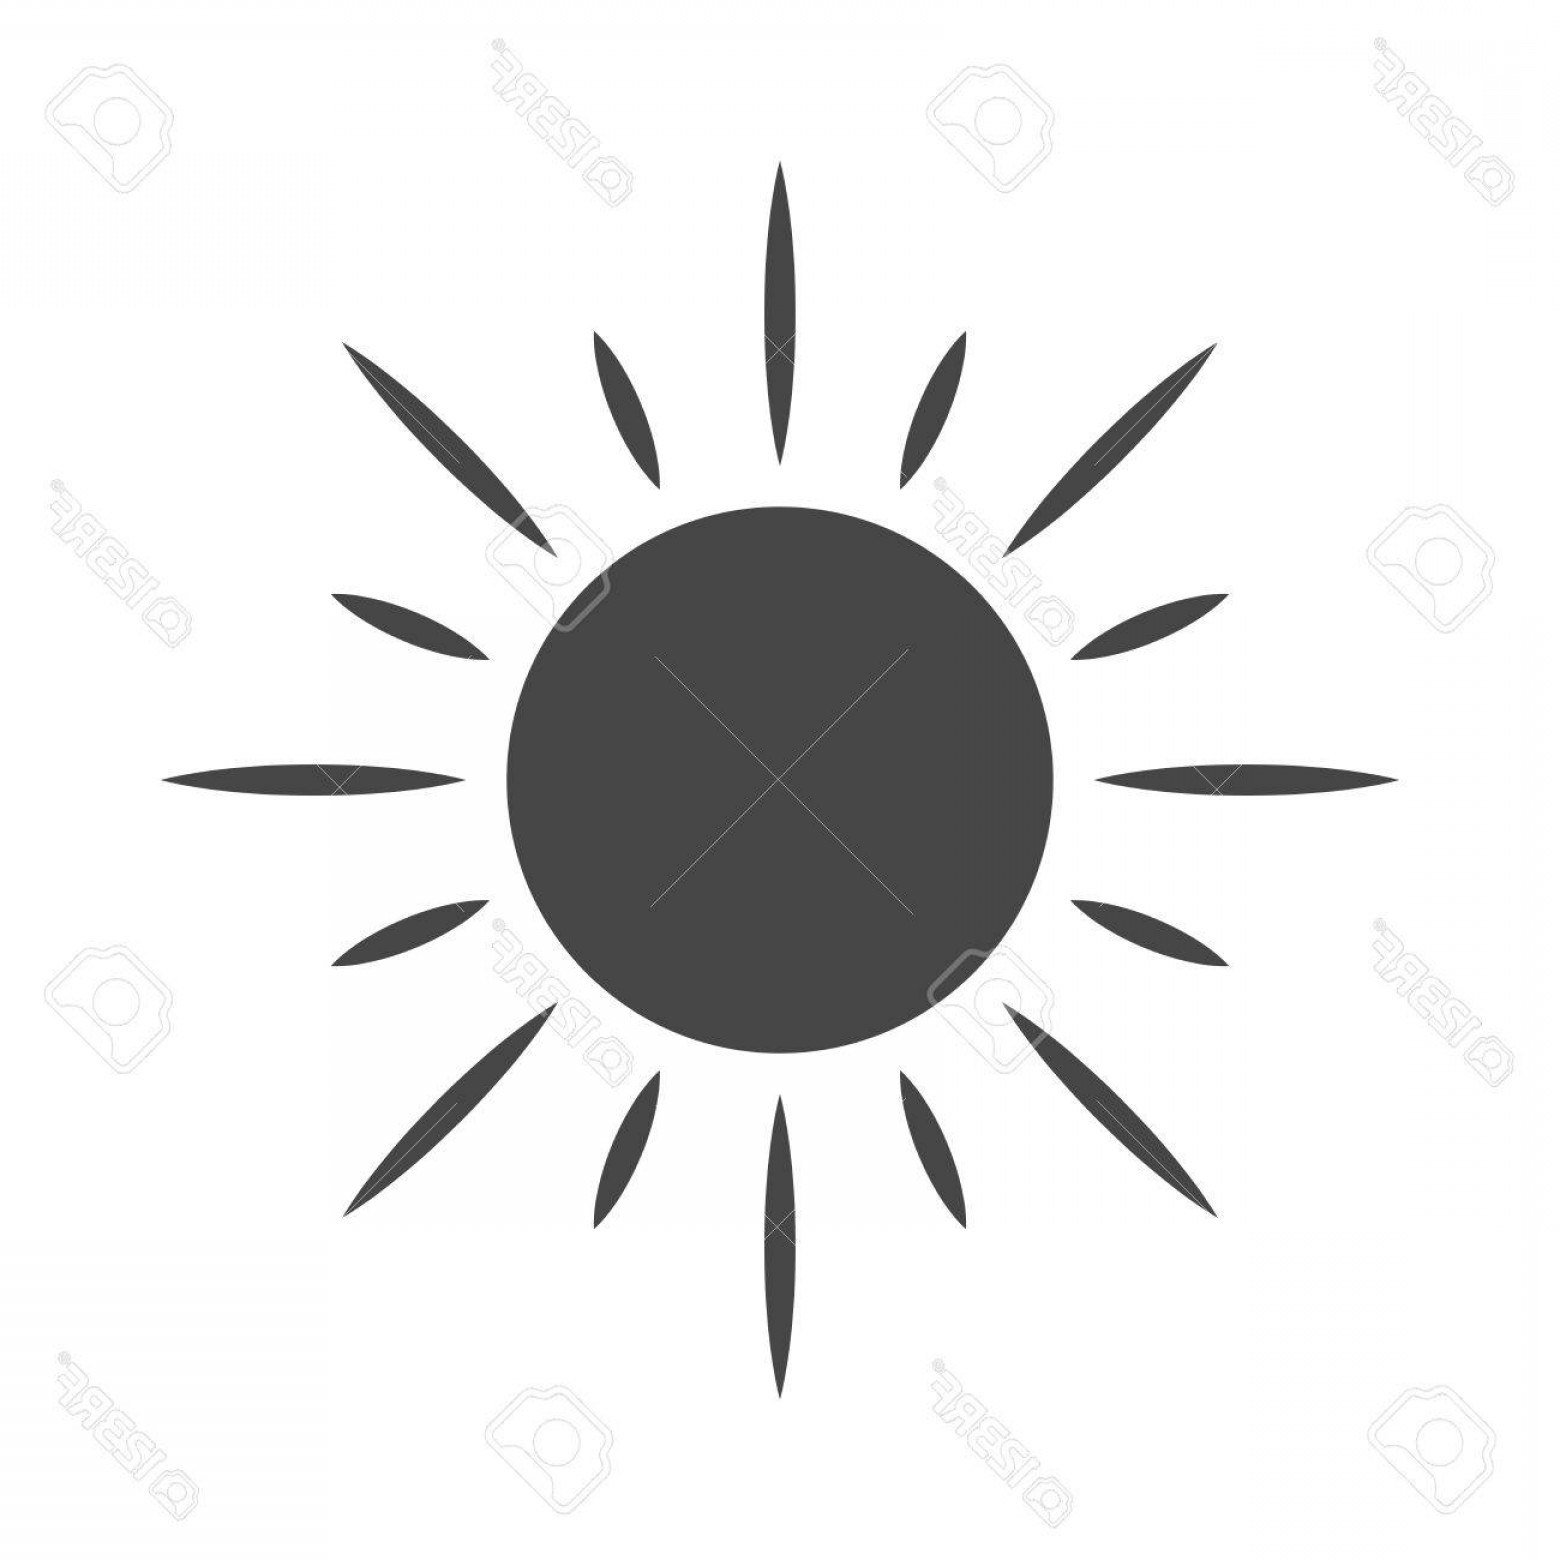 Sunset Black And White Backgrounds Vector: Photostock Vector Sun Icon Light Sign With Sunbeams Black Design Element Isolated On White Background Symbol Of Sunris